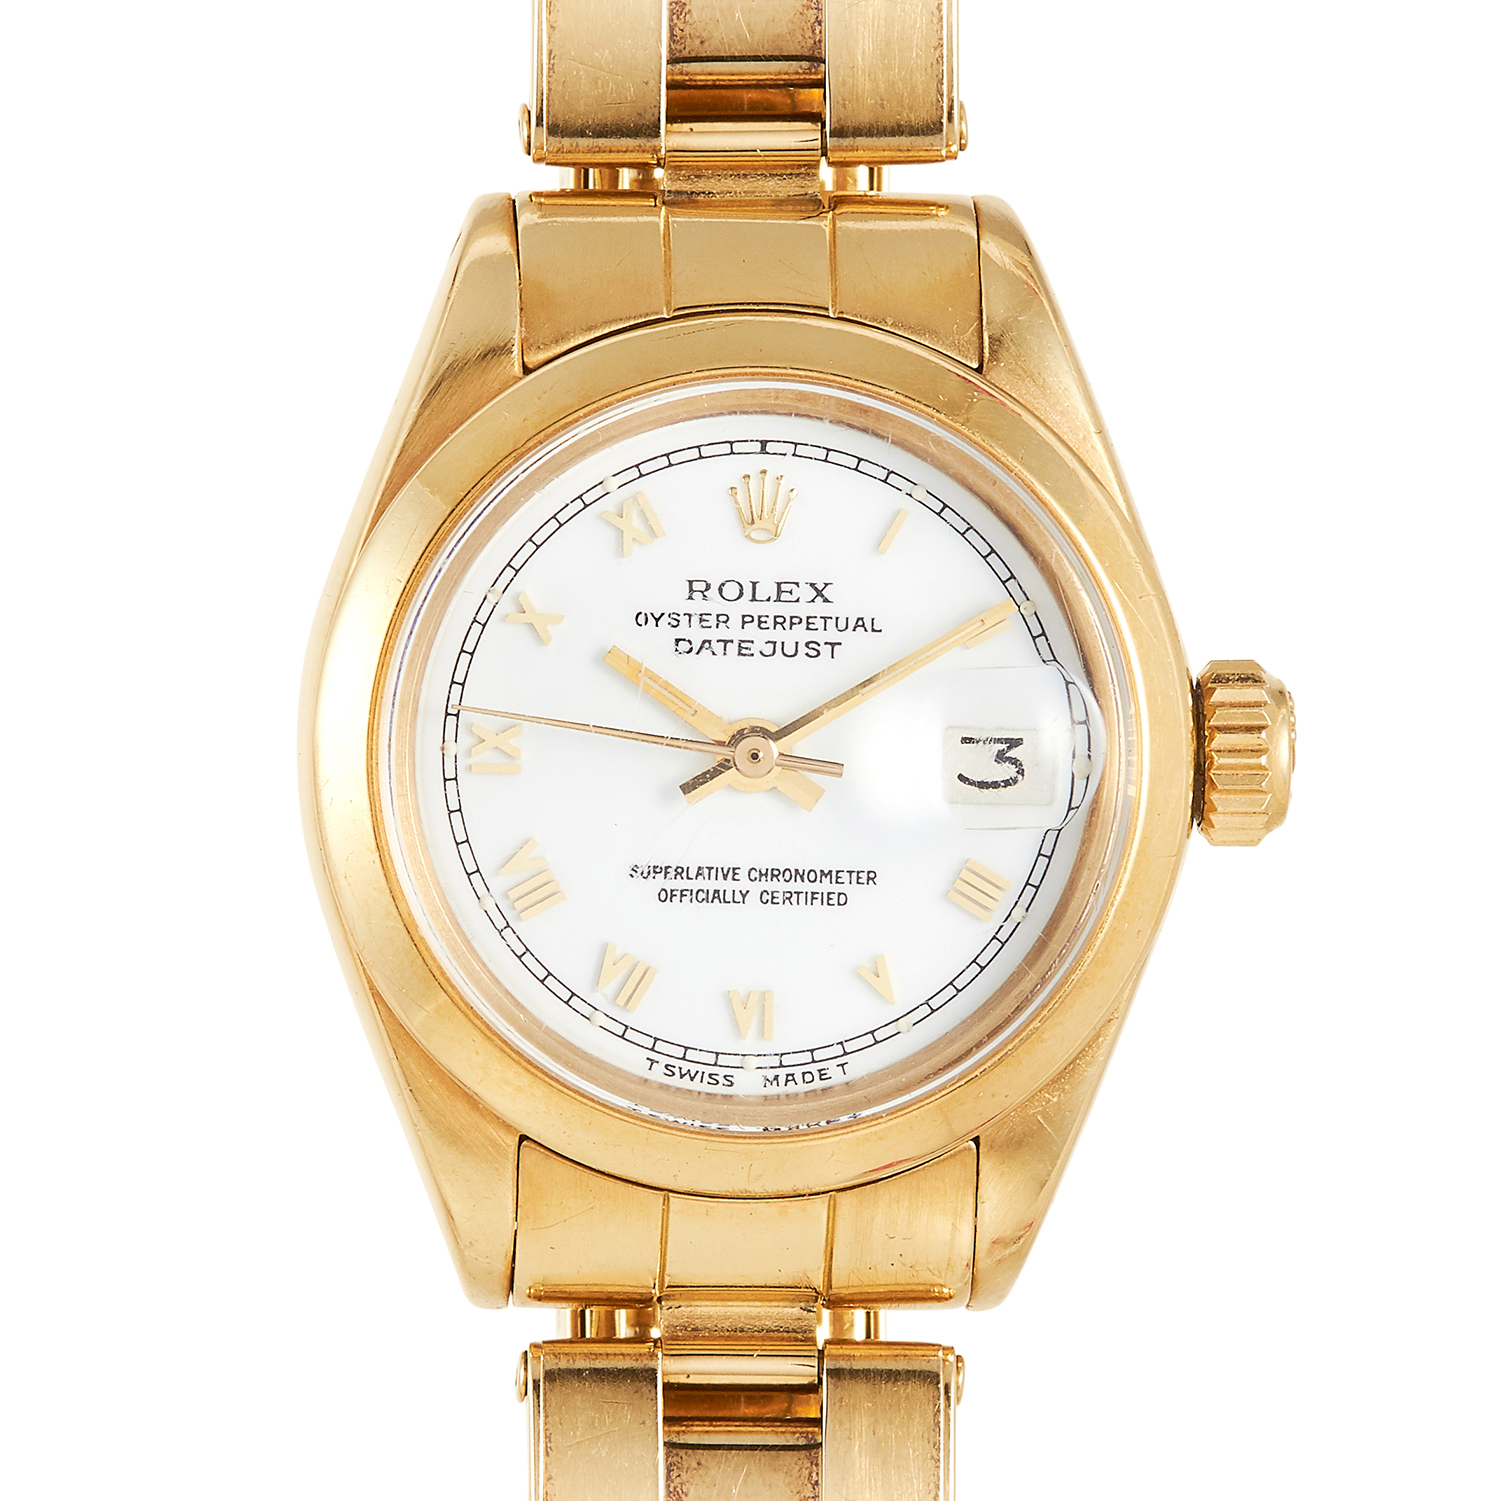 Los 107 - A LADIES 'DATEJUST OYSTER PERPECTUAL' WRISTWATCH in 18ct yellow gold, with white dial, signed Rolex,